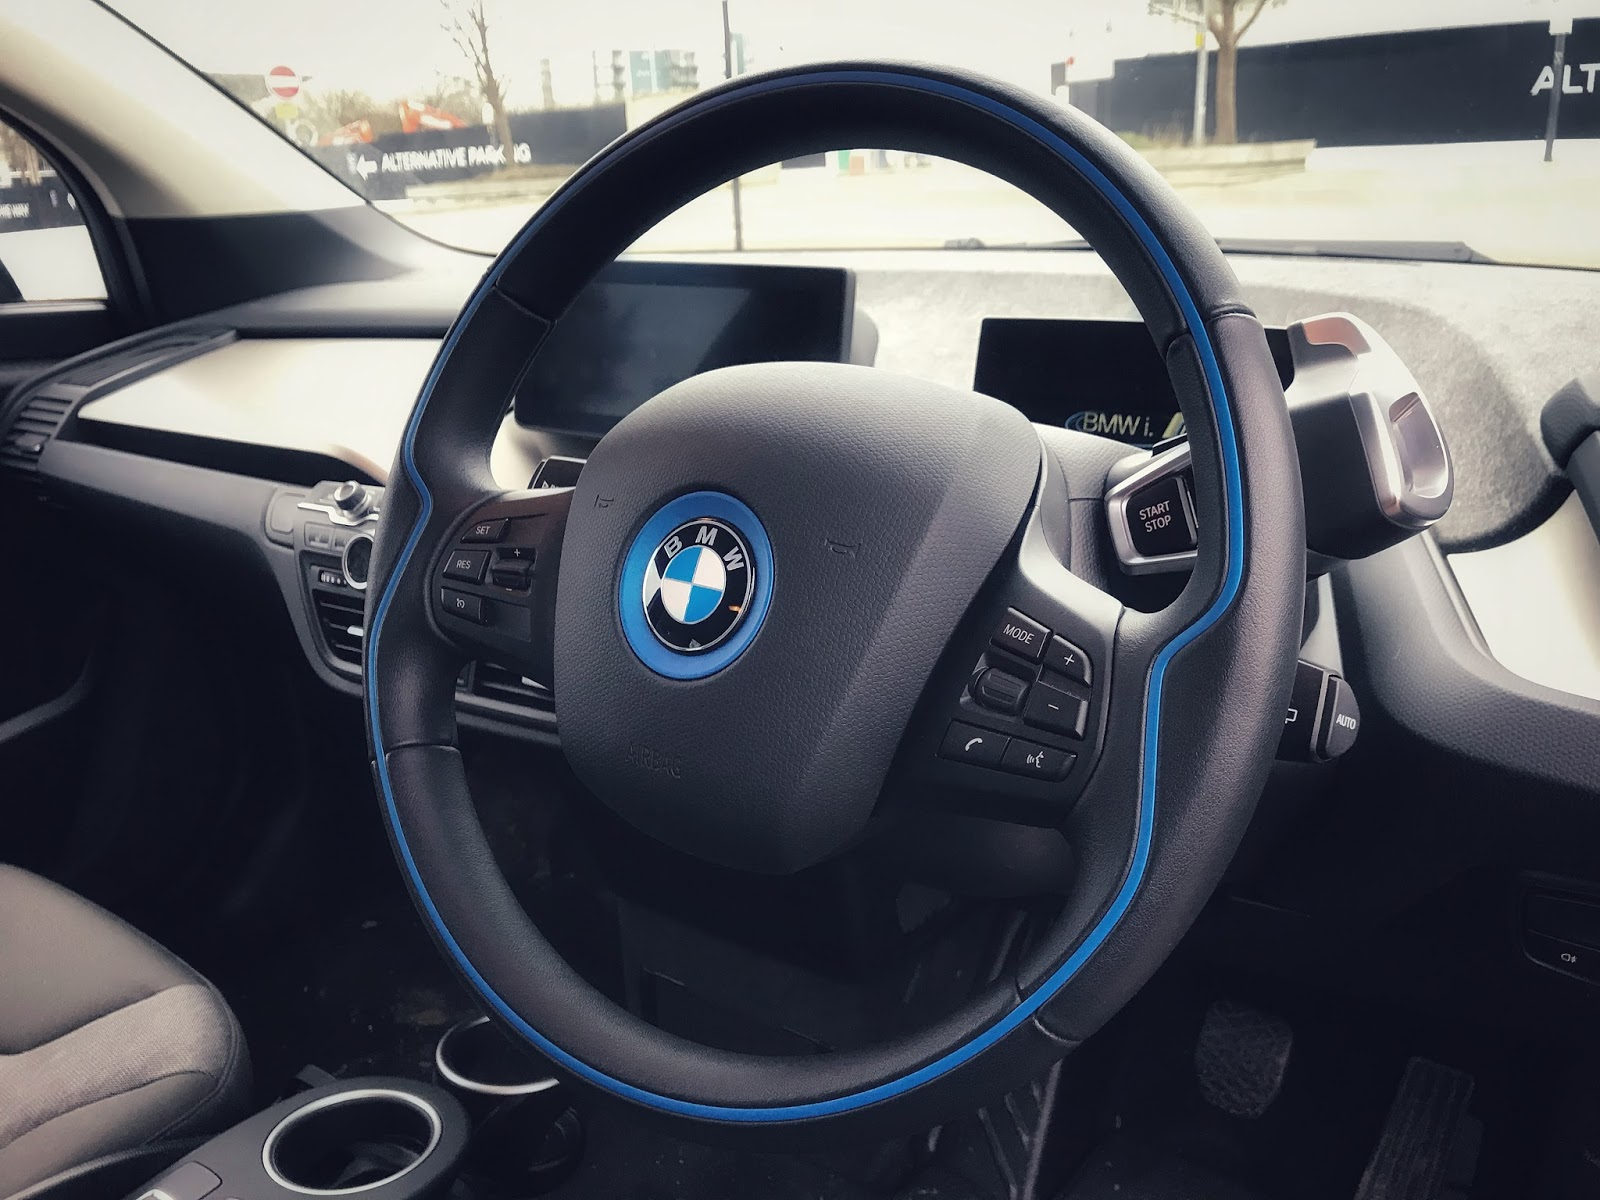 BMW i3 Electric Car interior